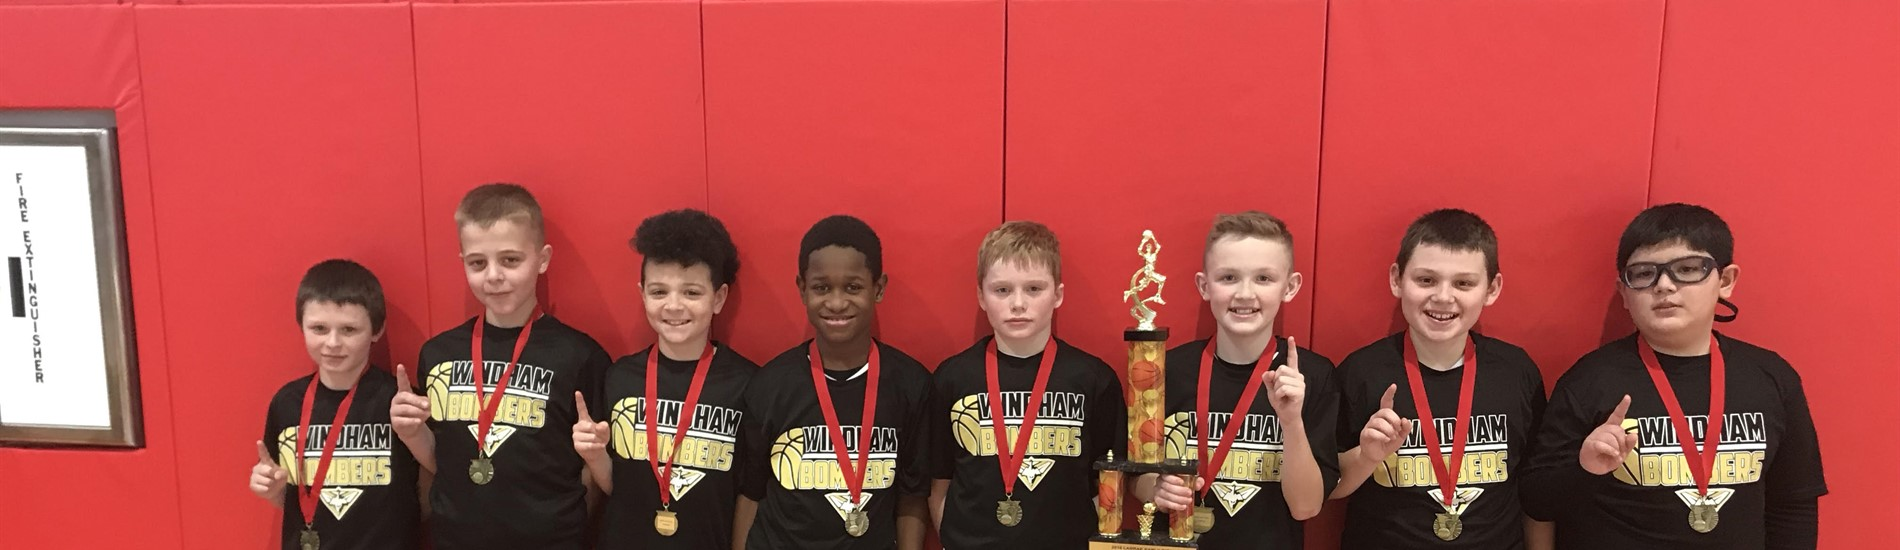 The 5th grade boys took 1st place in the LaBrae basketball tournament!